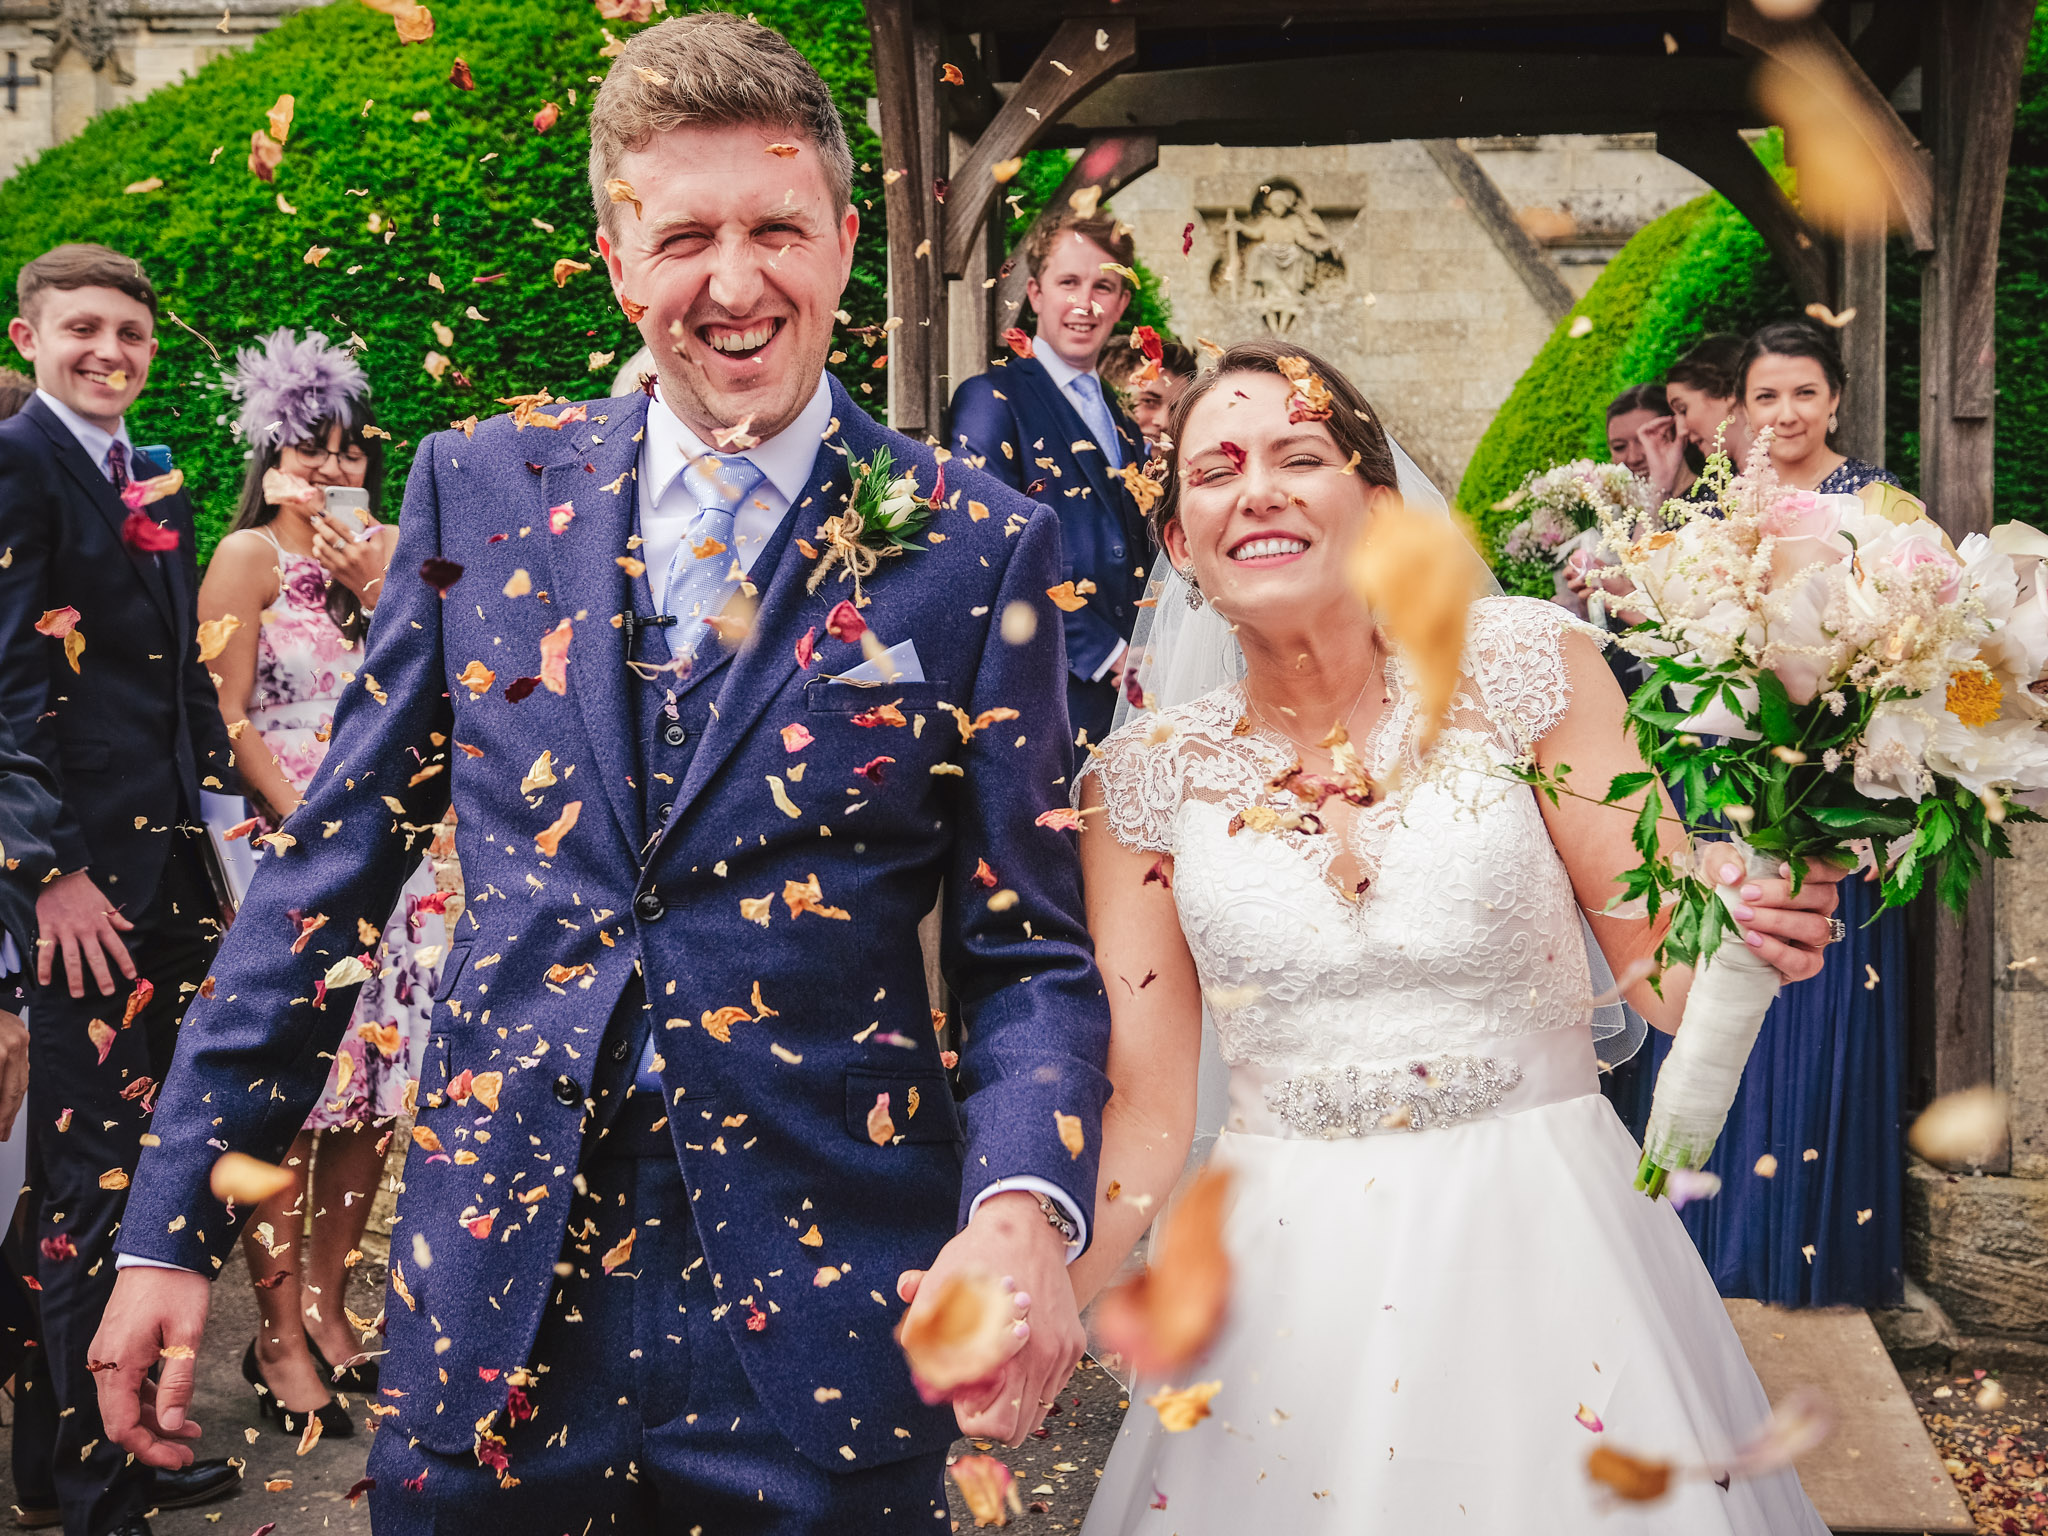 Couple recessional through confetti - photo by Andrew Billington Photography